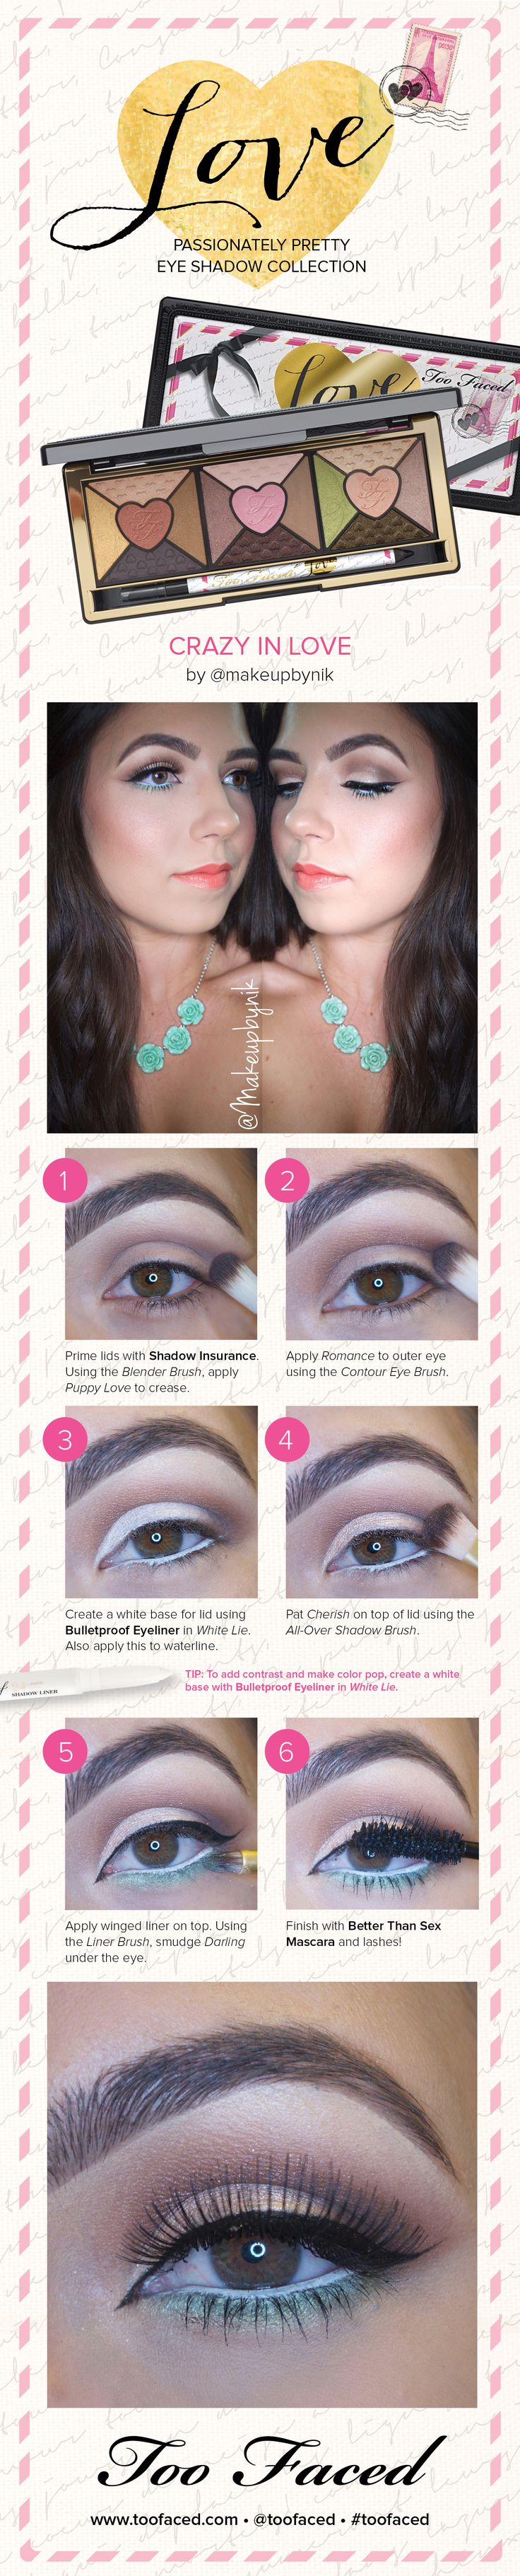 Get this gorgeous eyeshadow look with this how-to tutorial from Too Faced.